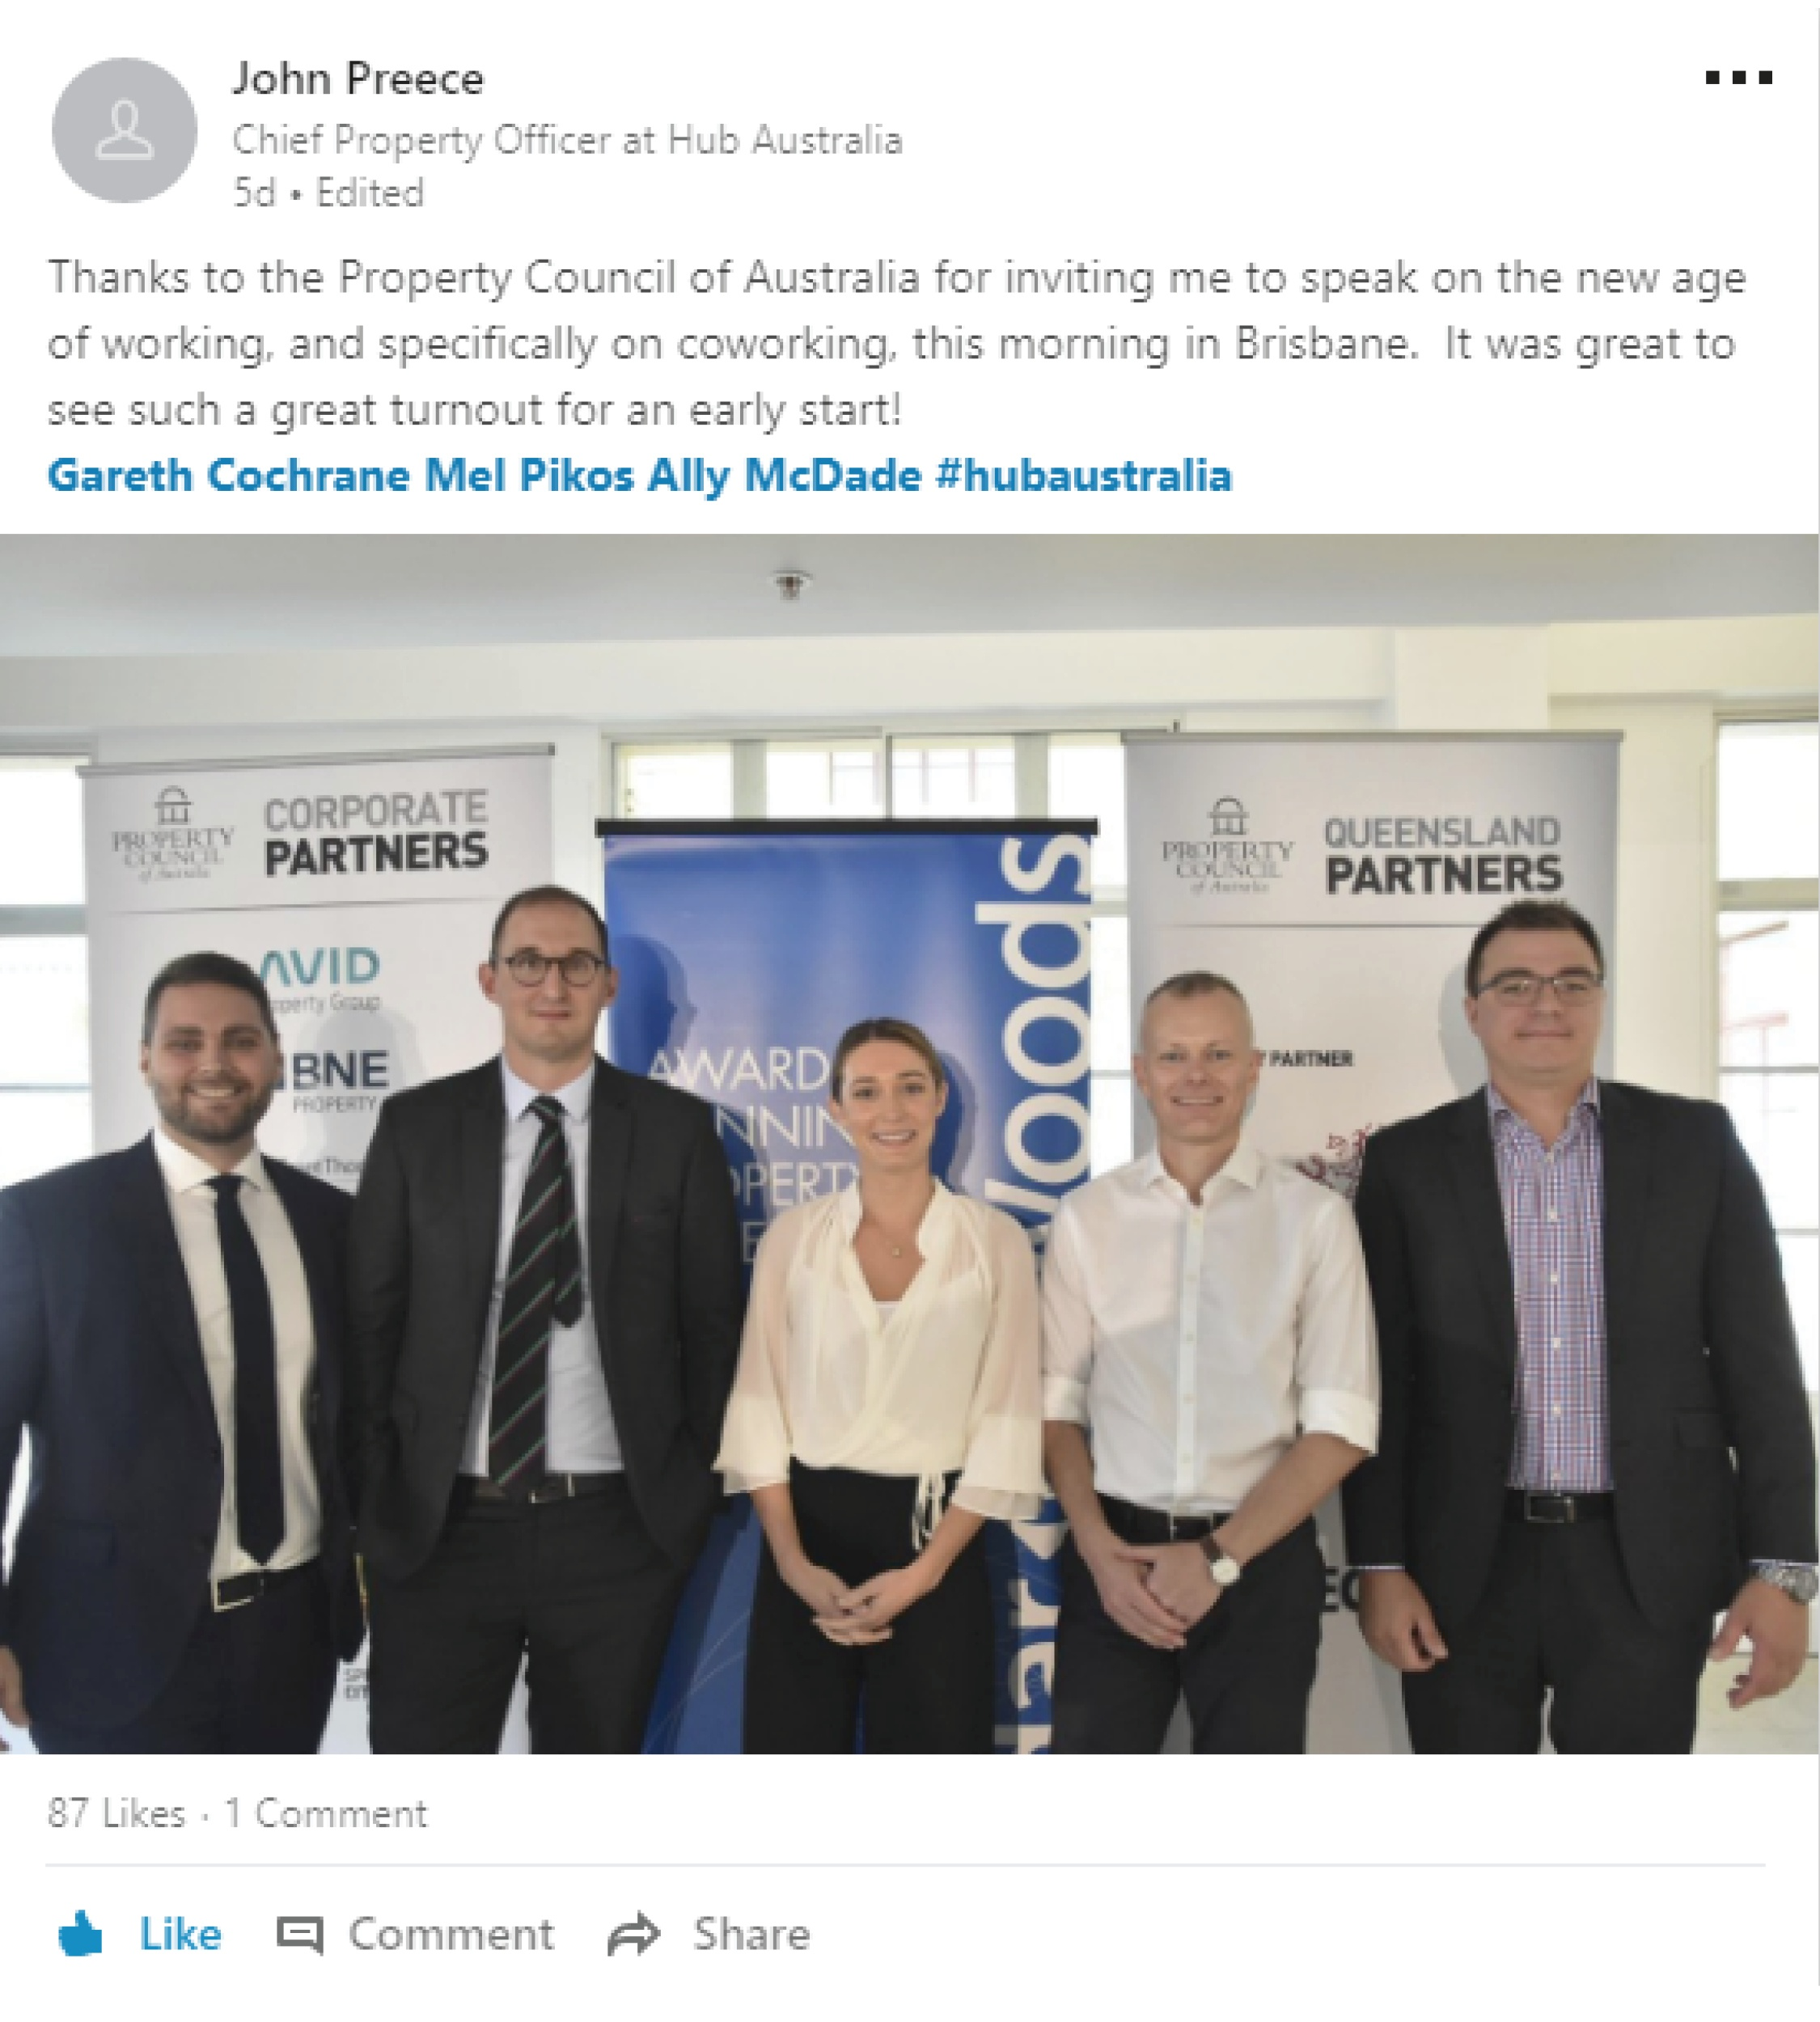 property-council-australia-linkedin1.jpg